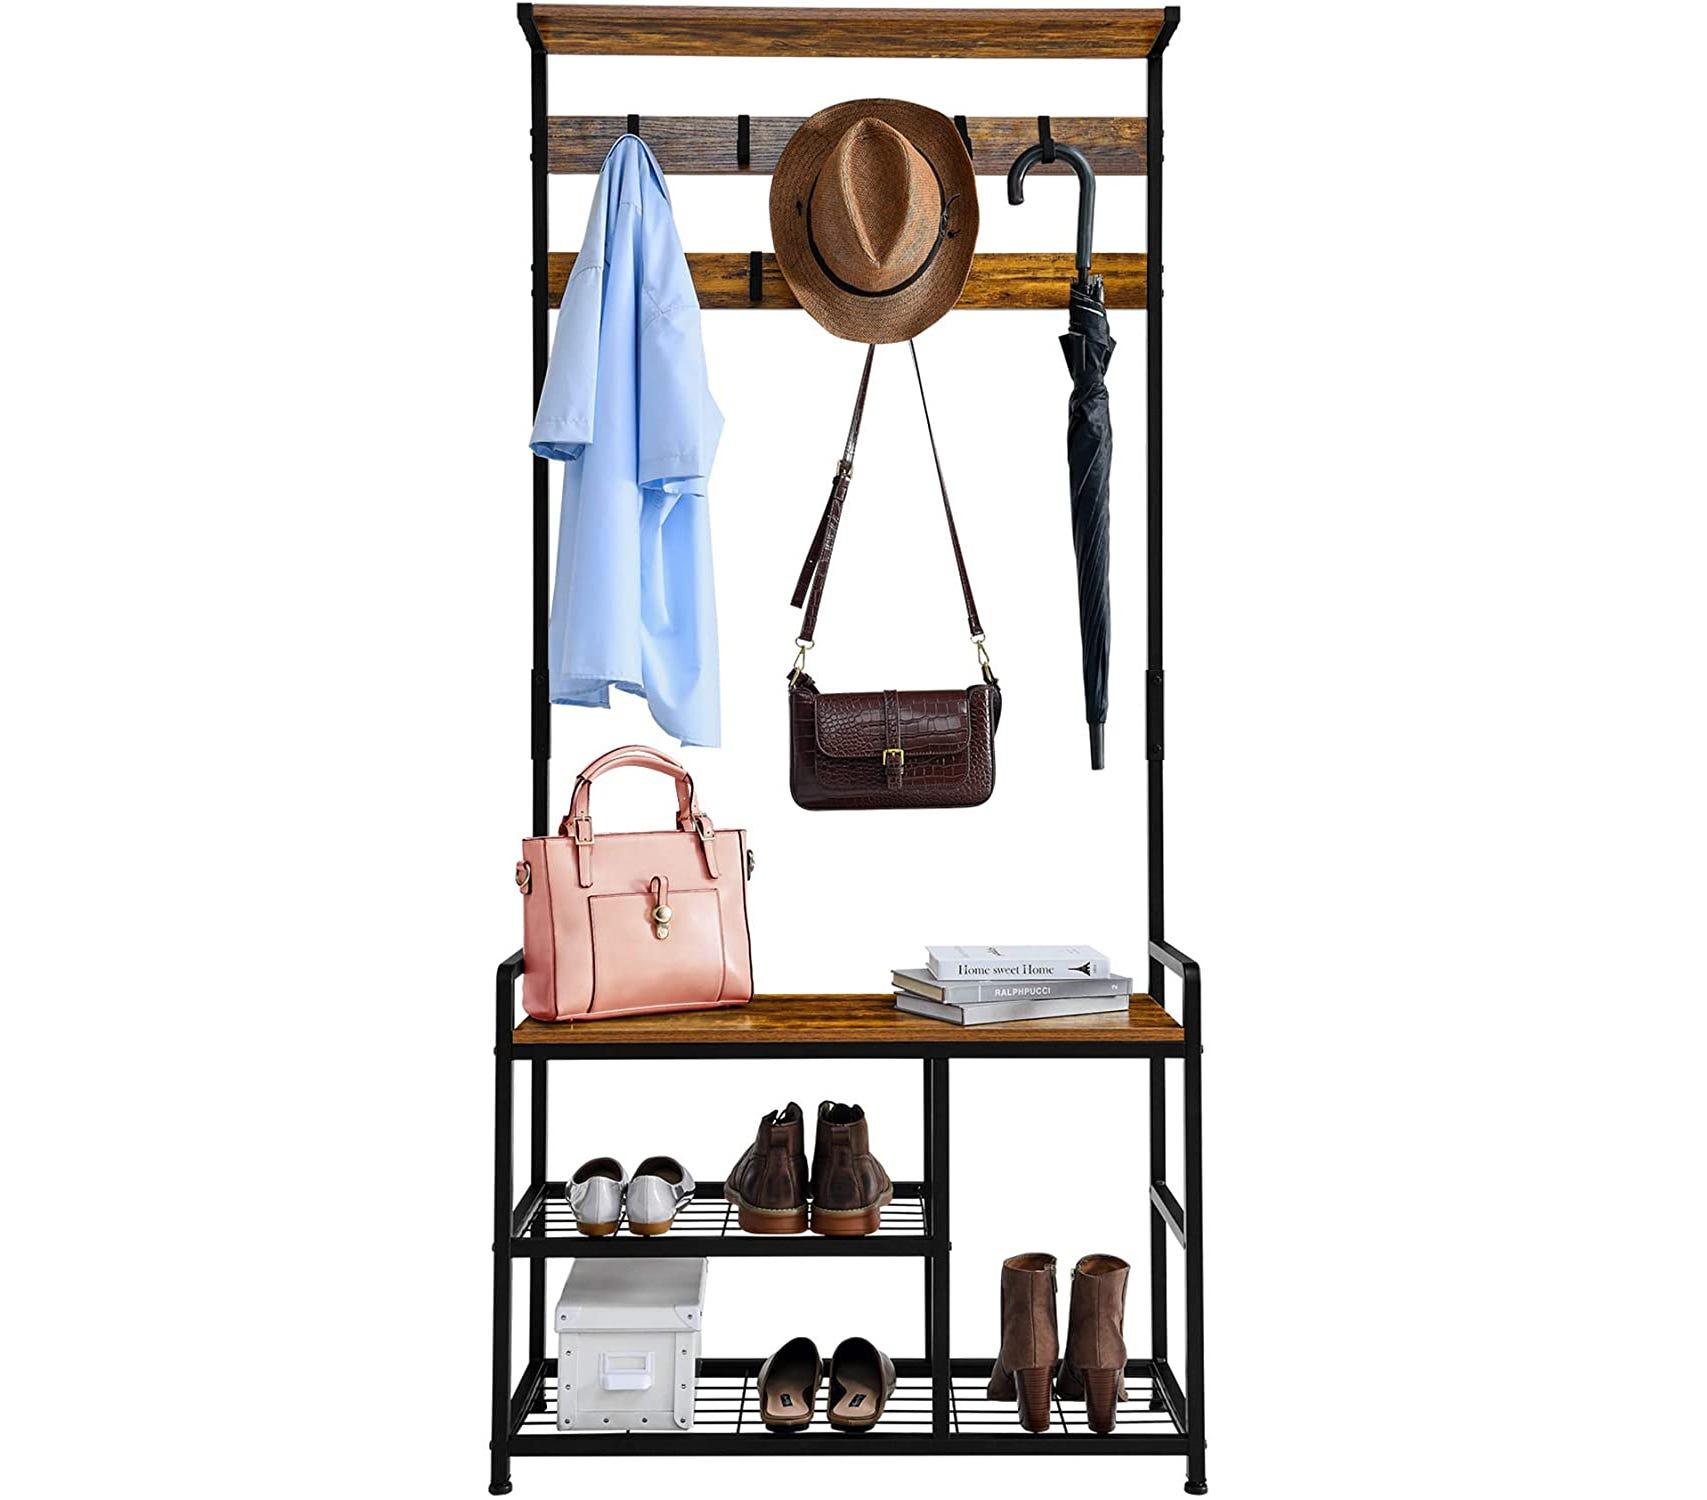 Wood and metal bench with hat hooks above and shoe shelves below